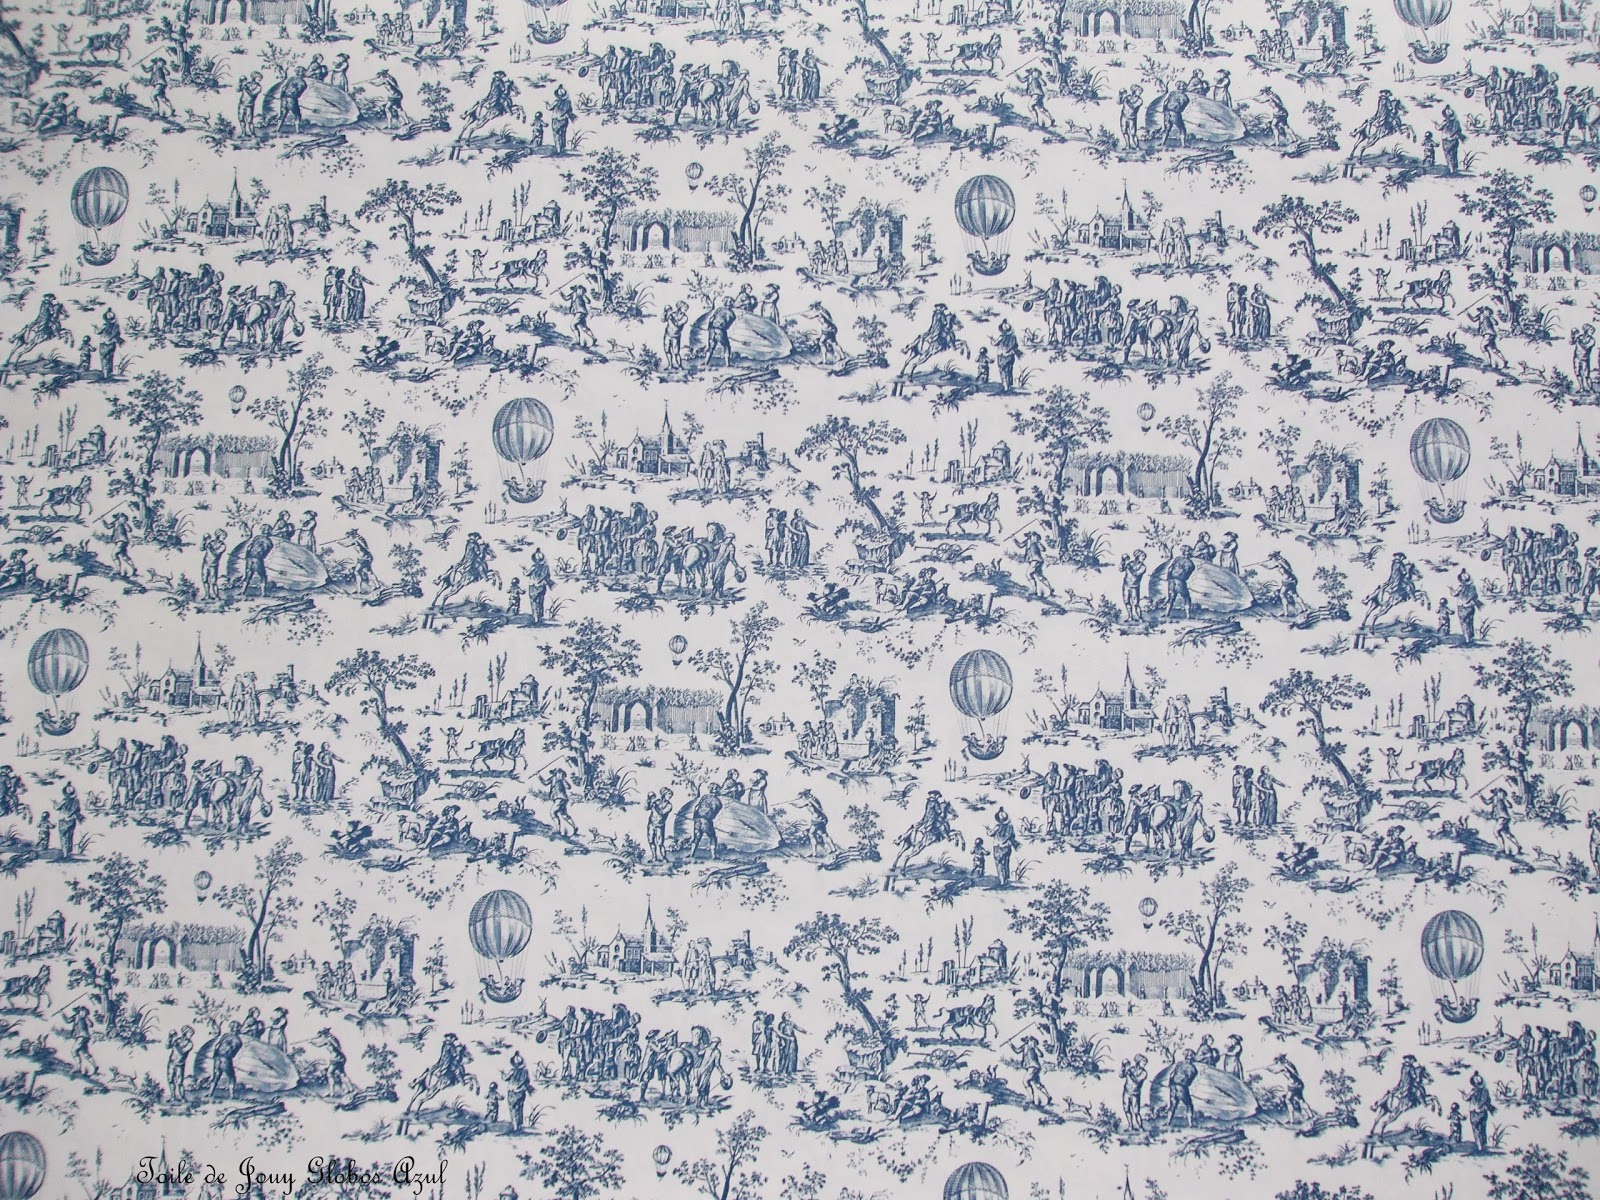 Eclectic or jumbled - Chambre toile de jouy ...